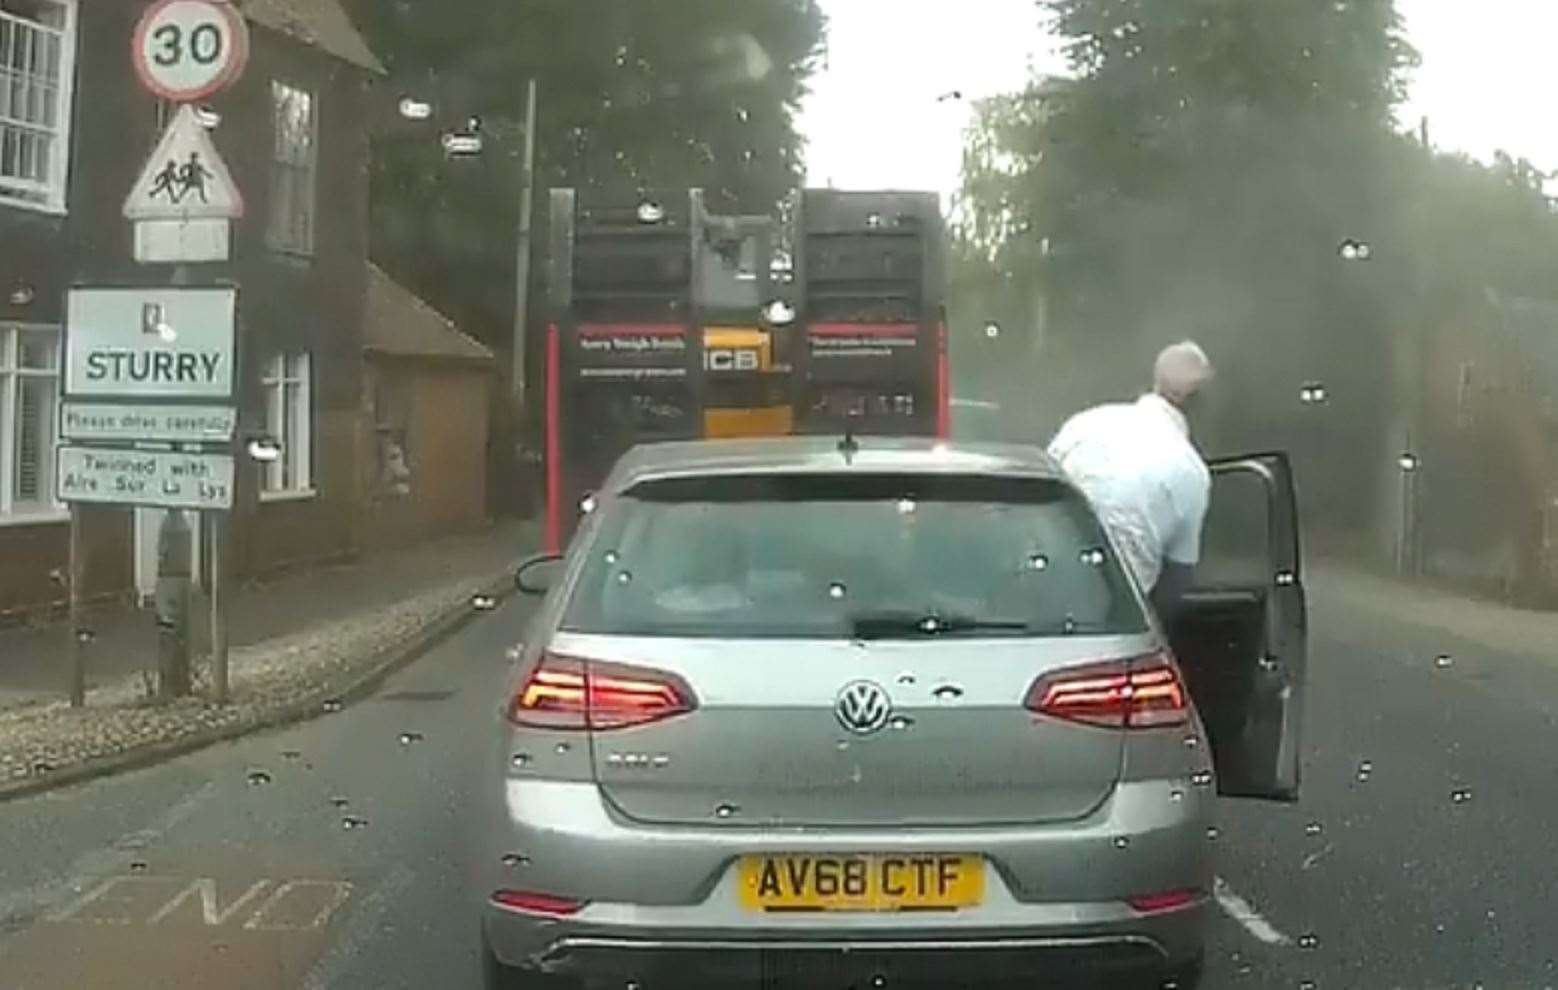 A driver leans out of his car to get a closer look. Pic: AngryBritain / Twitter (13676604)